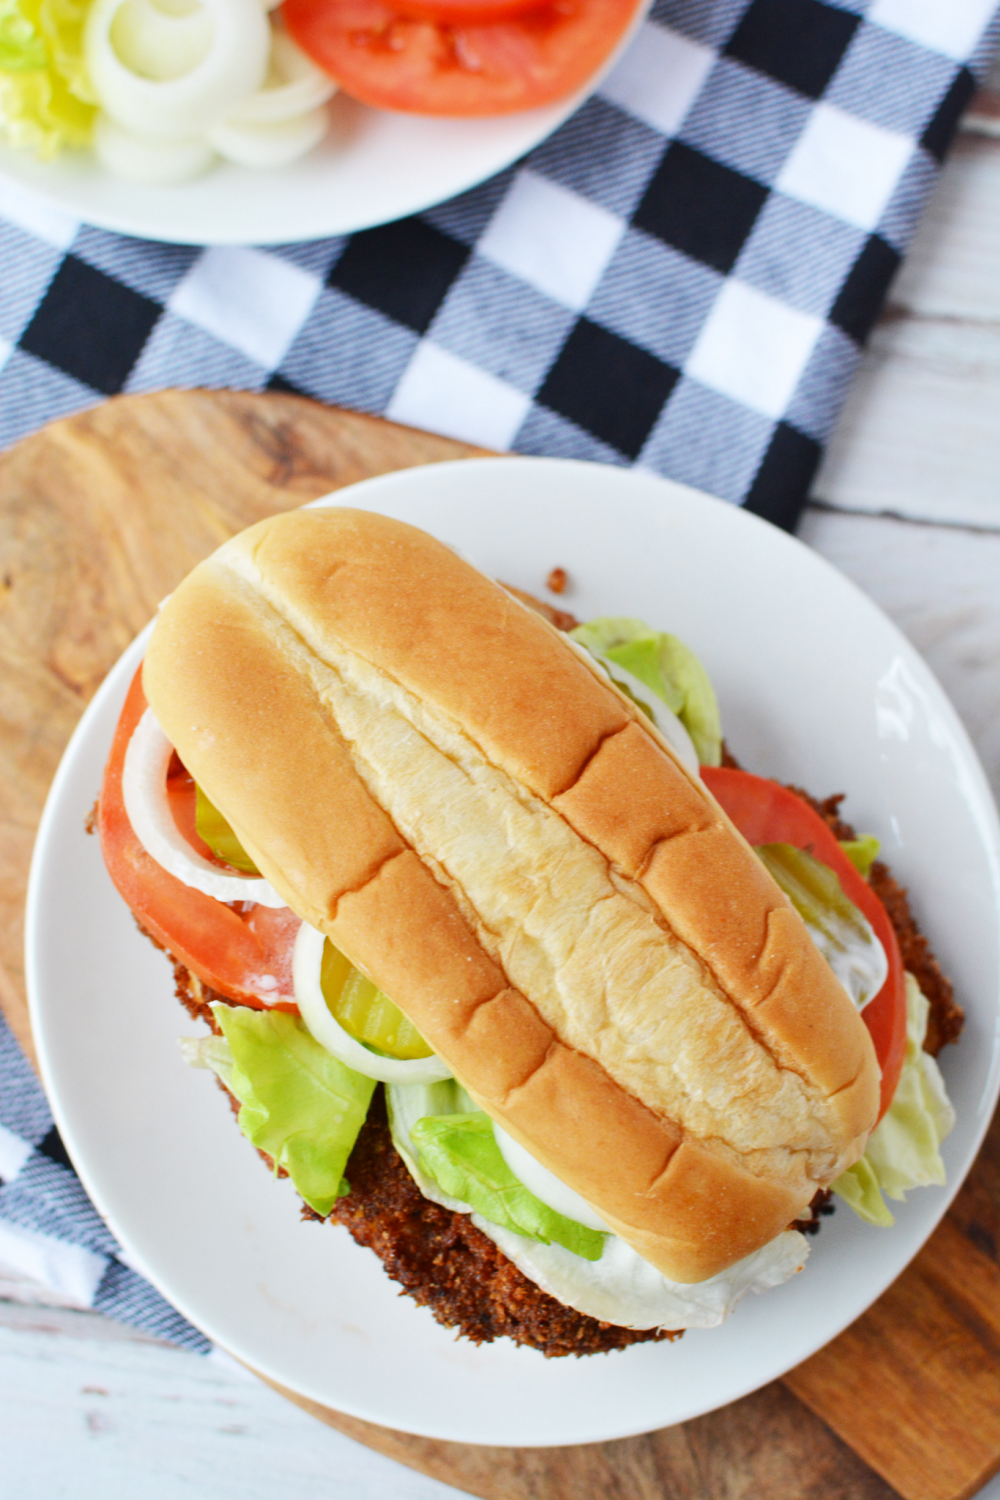 Breaded Pork Tenderloin Sandwich is a classic Indiana Dish.